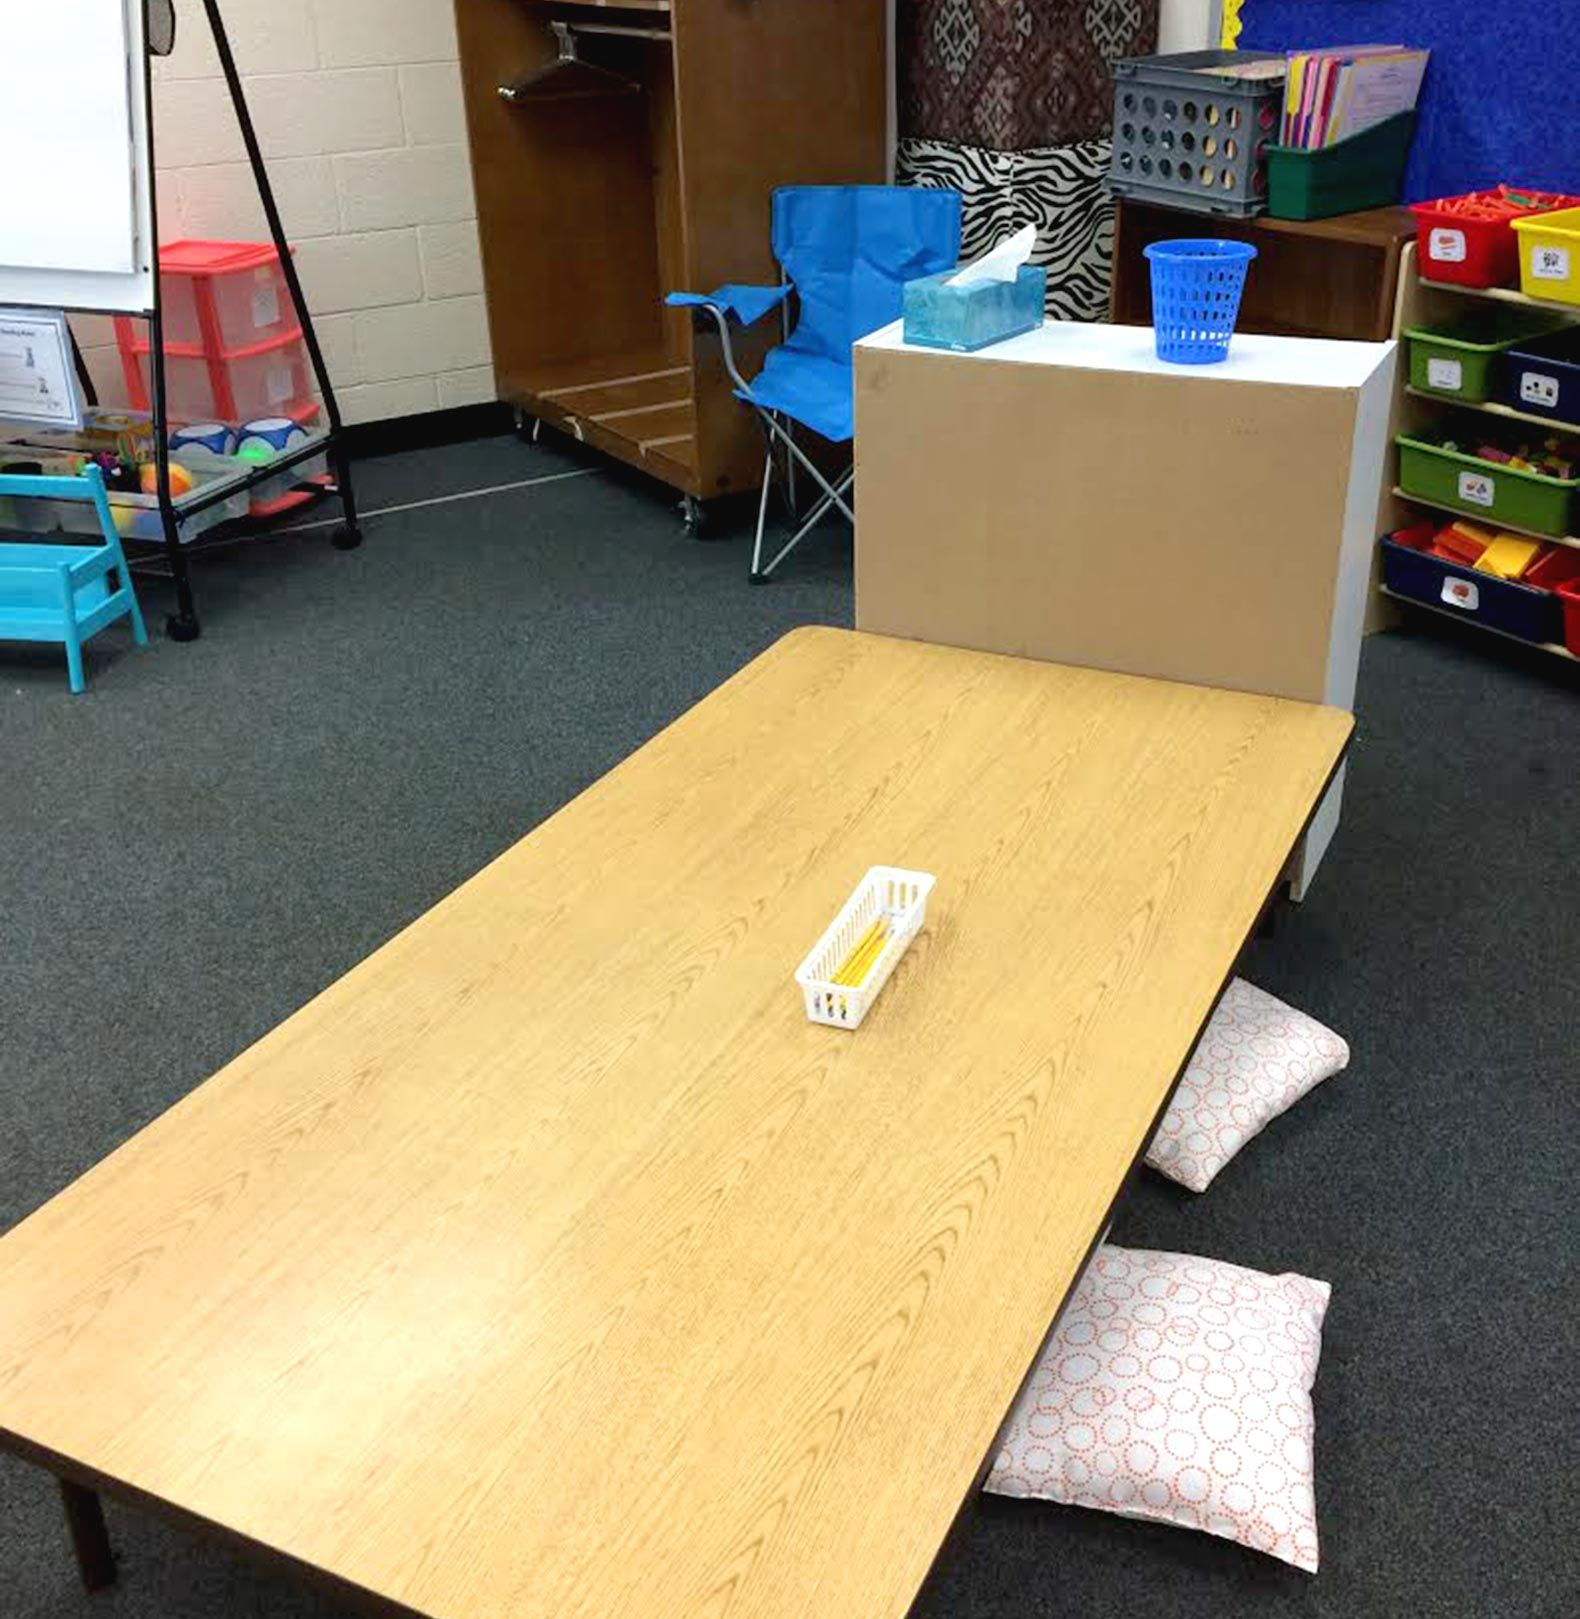 Like many flexible classrooms, Kate Roscioli's has work areas at different heights to accommodate sitting or standing.